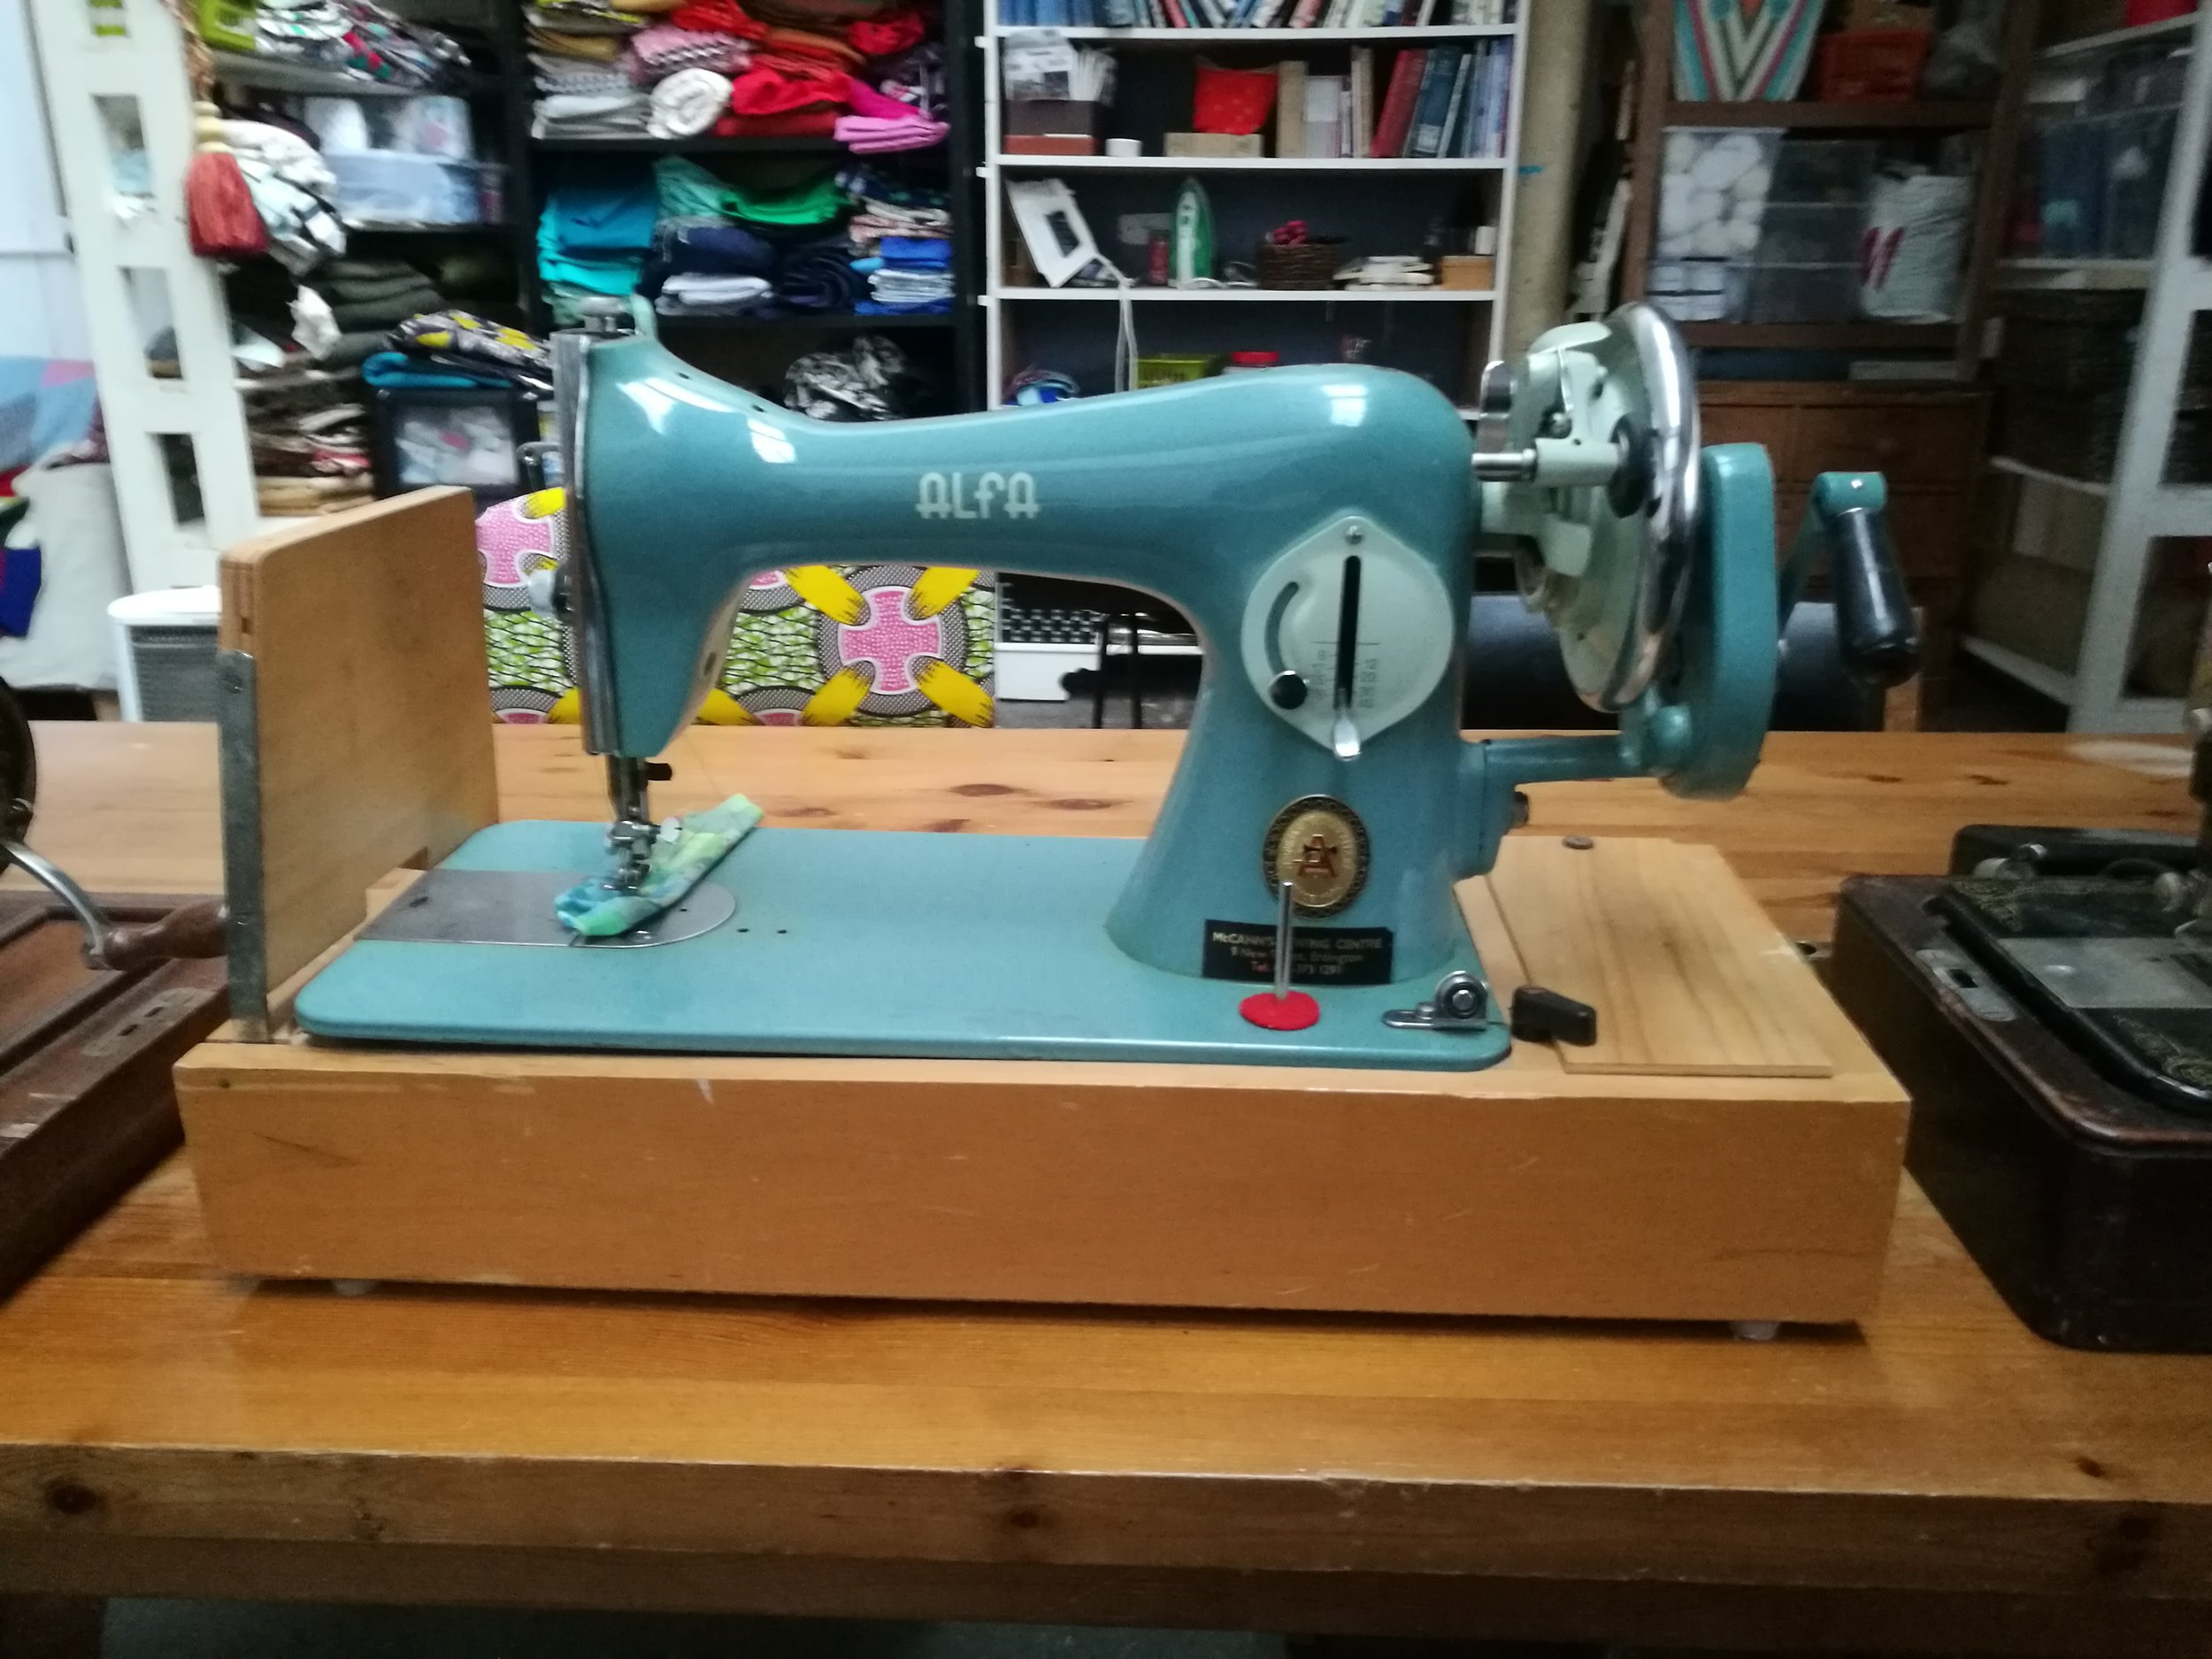 'New' Alfa sewing machine in our textiles workshop